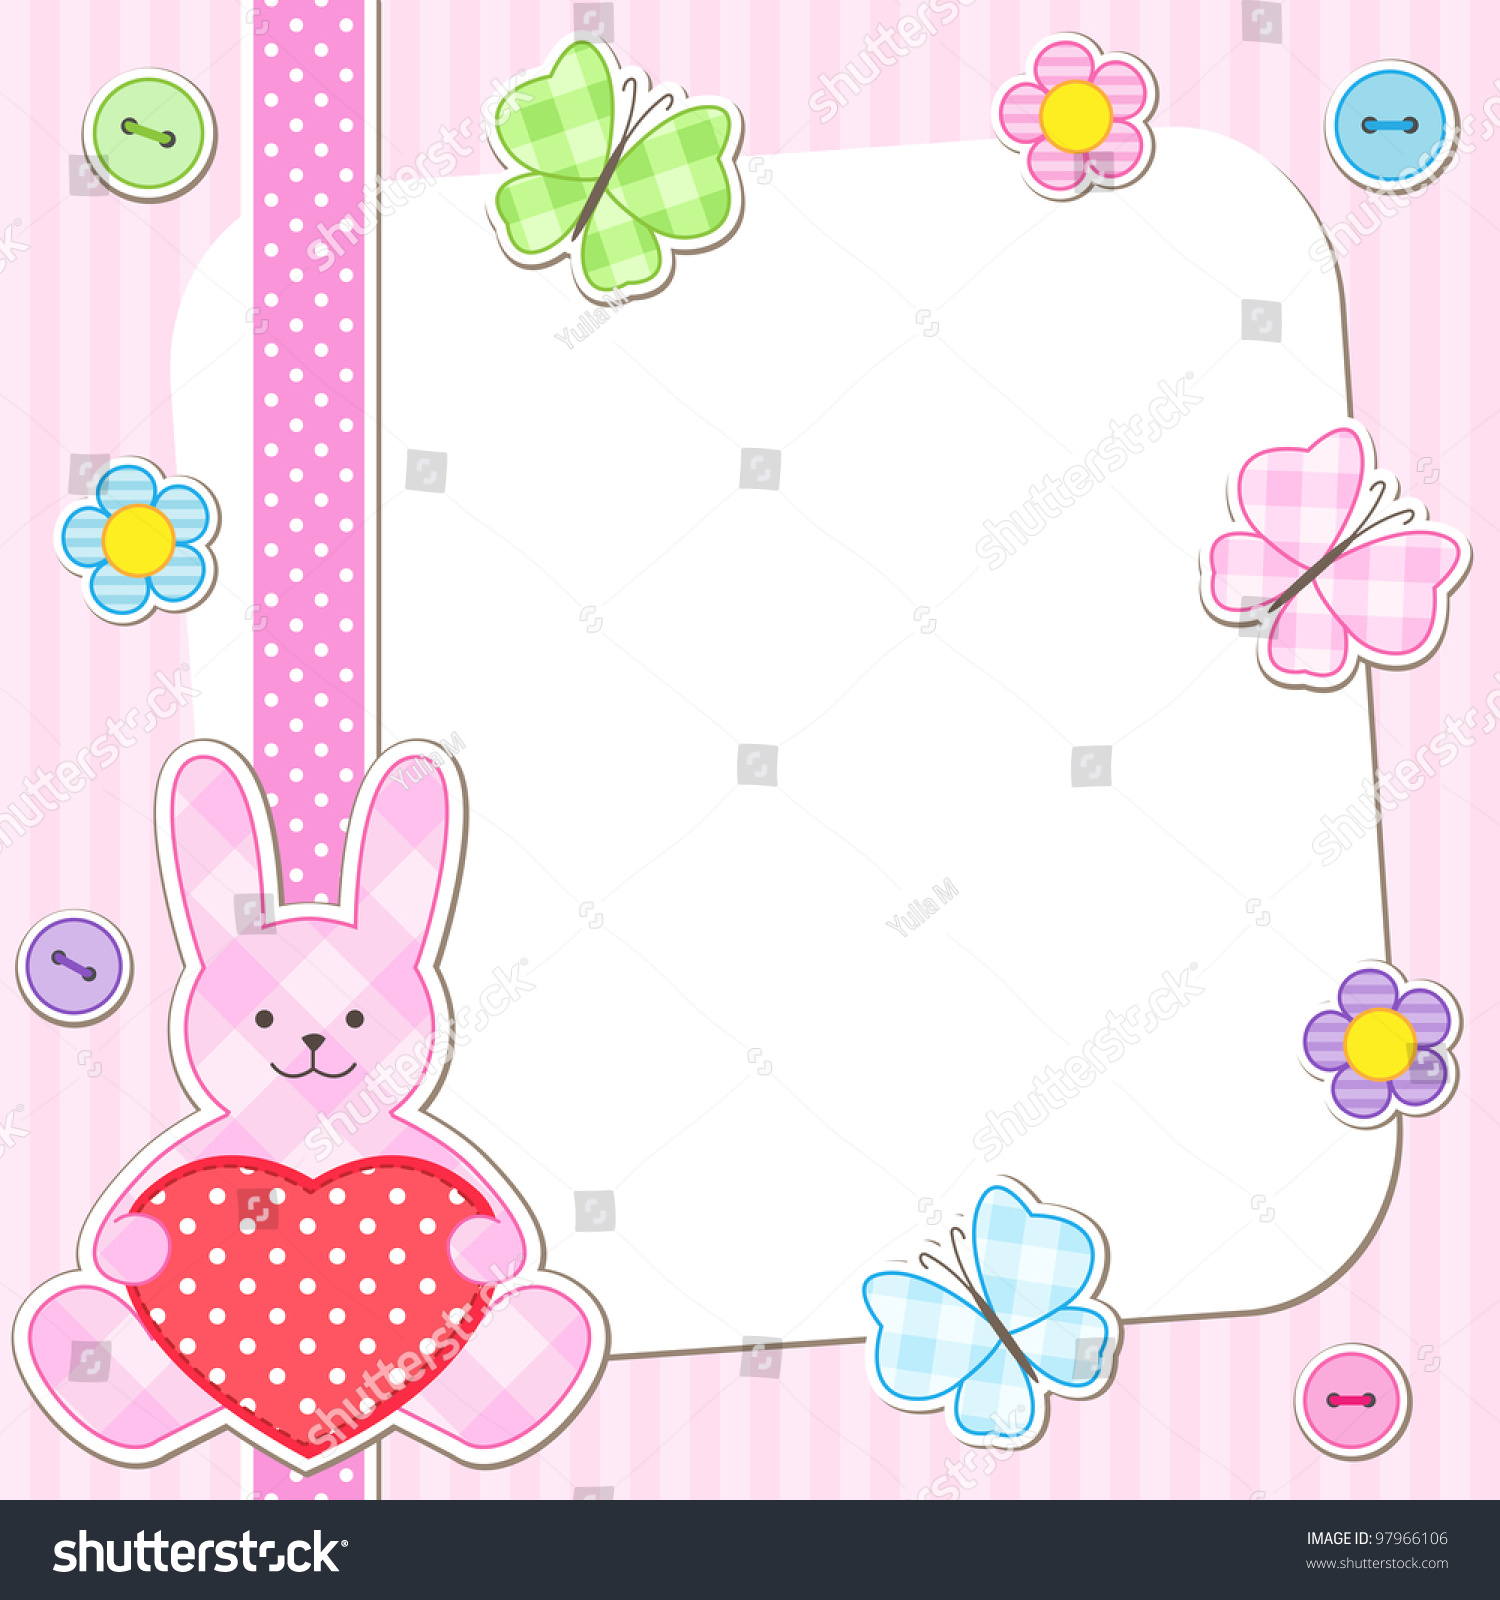 Rabbit cards pink girl birthday card stock vector 2018 97966106 rabbit cards in pink for girl birthday card baby shower invitation arrival announcement etc bookmarktalkfo Images